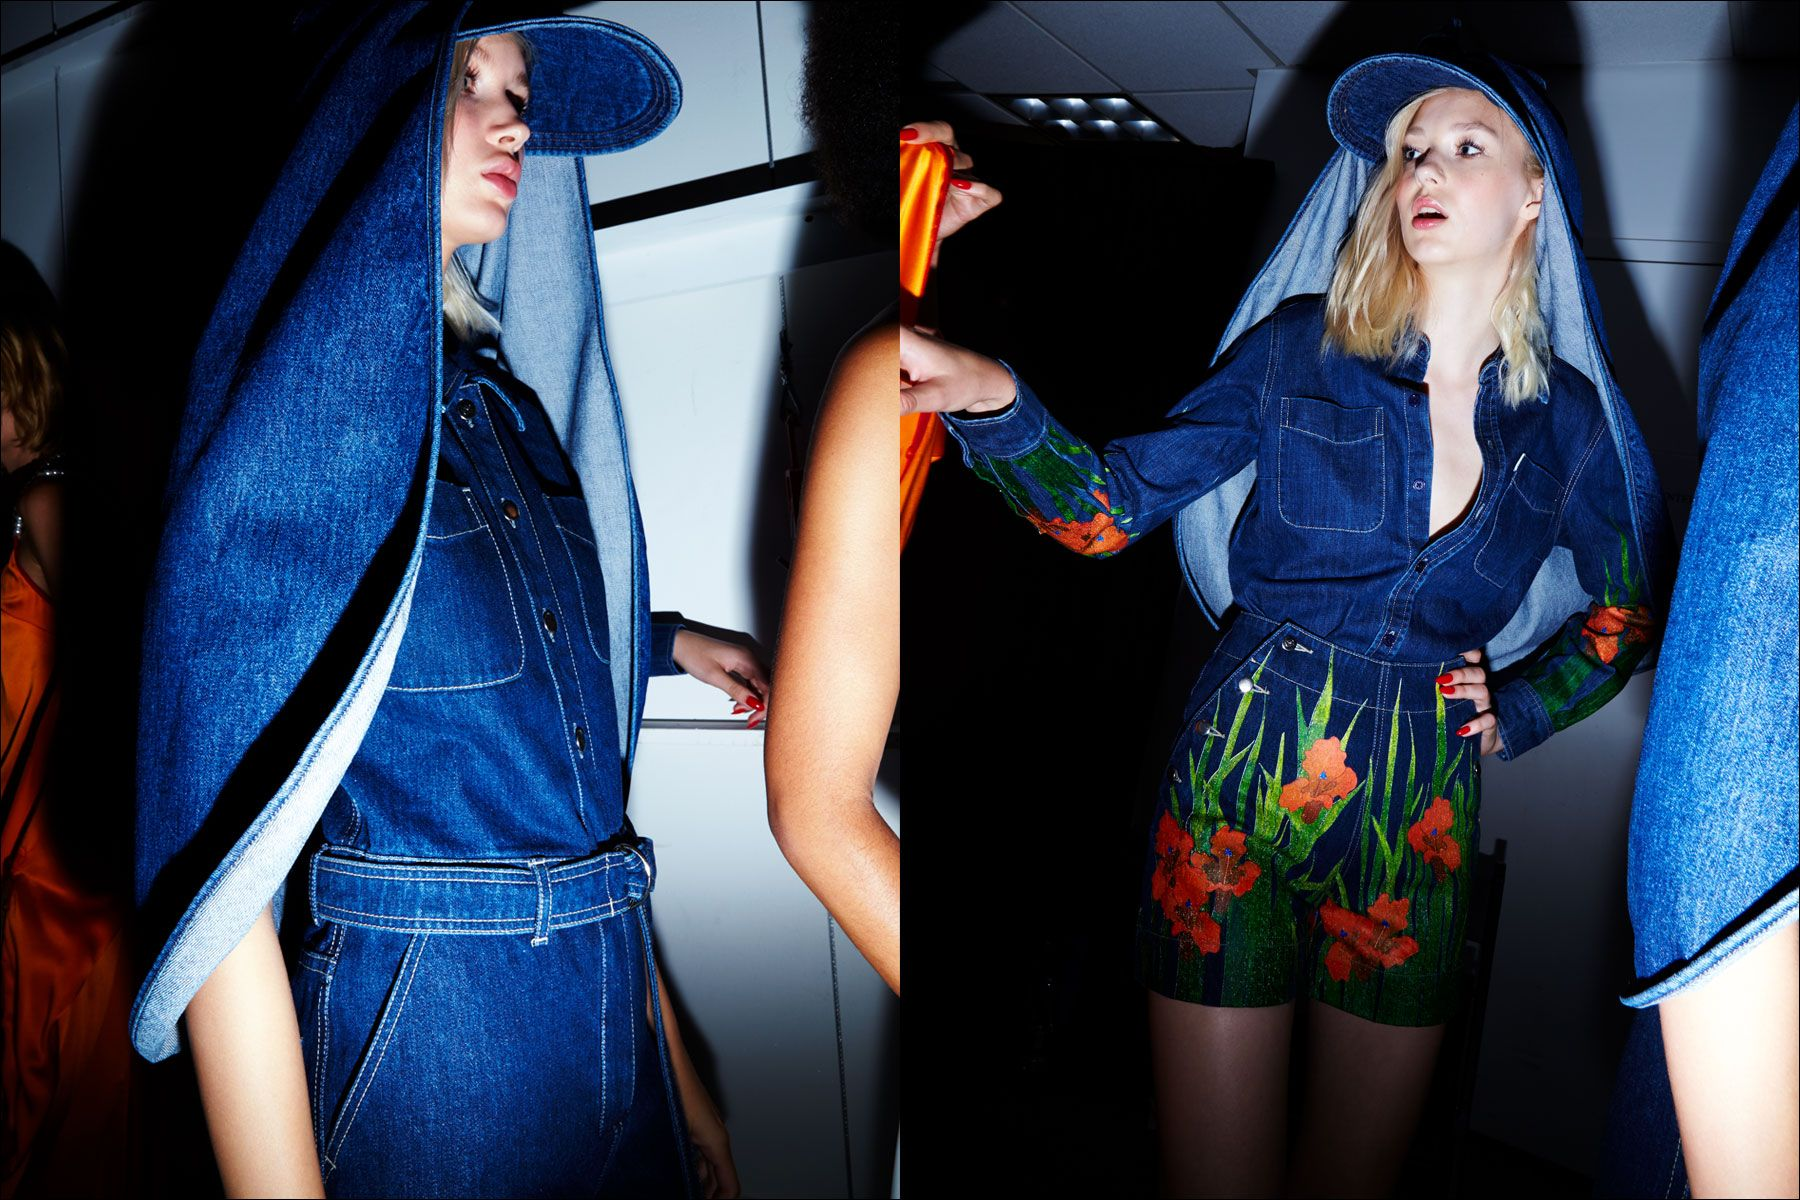 Models in denim looks by New York designer Adam Selman. Photography by Alexander Thompson for Ponyboy magazine NY.